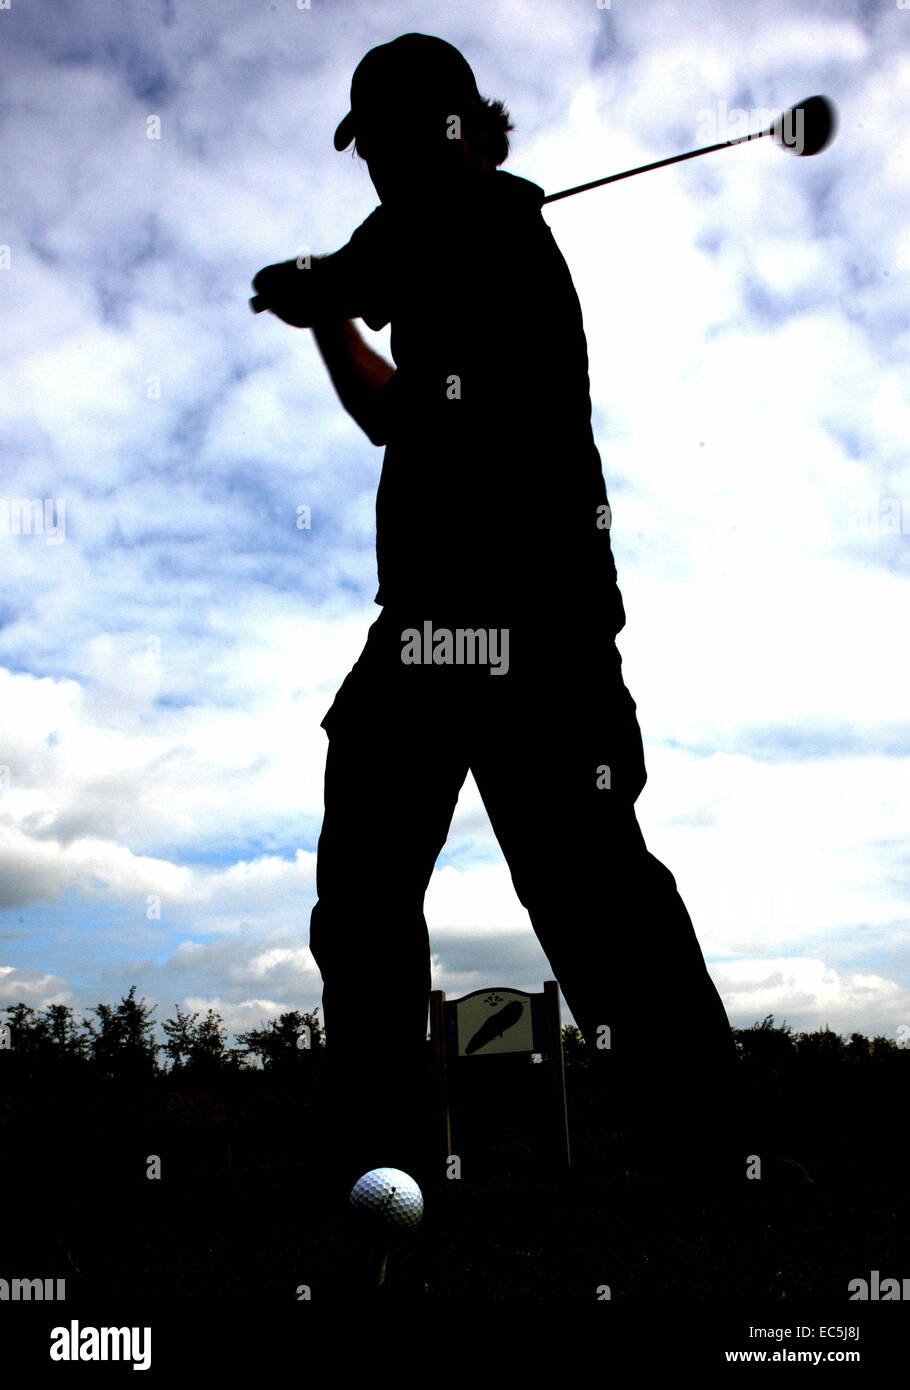 man hitting golfball - Stock Image